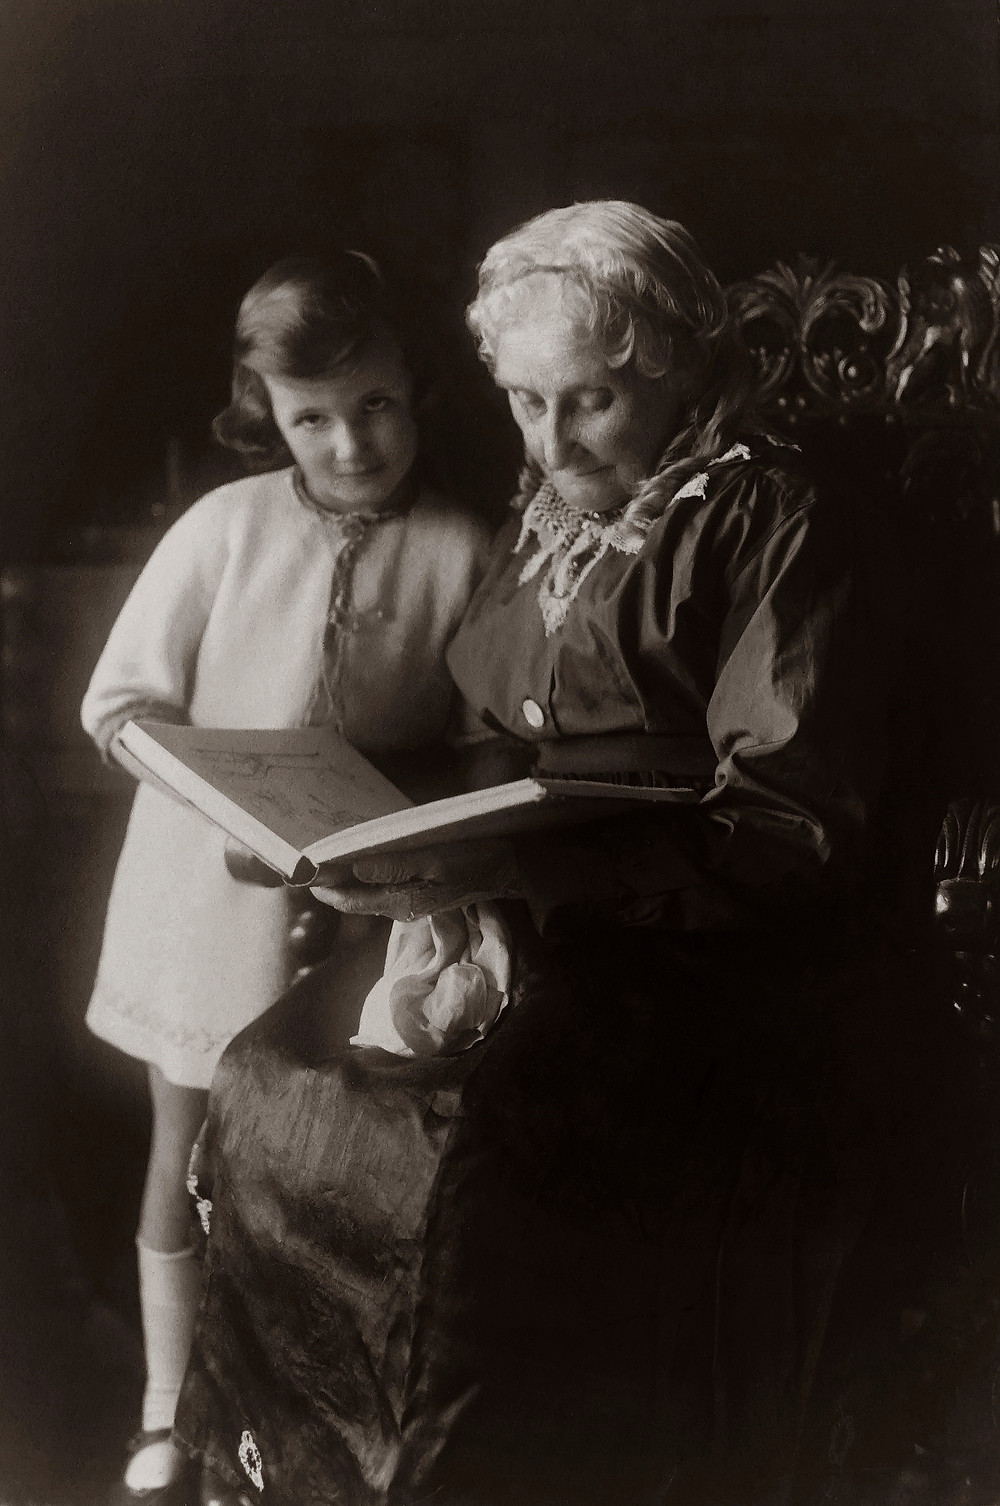 historical photo of a grandmother in the 1800s reading to a young girl